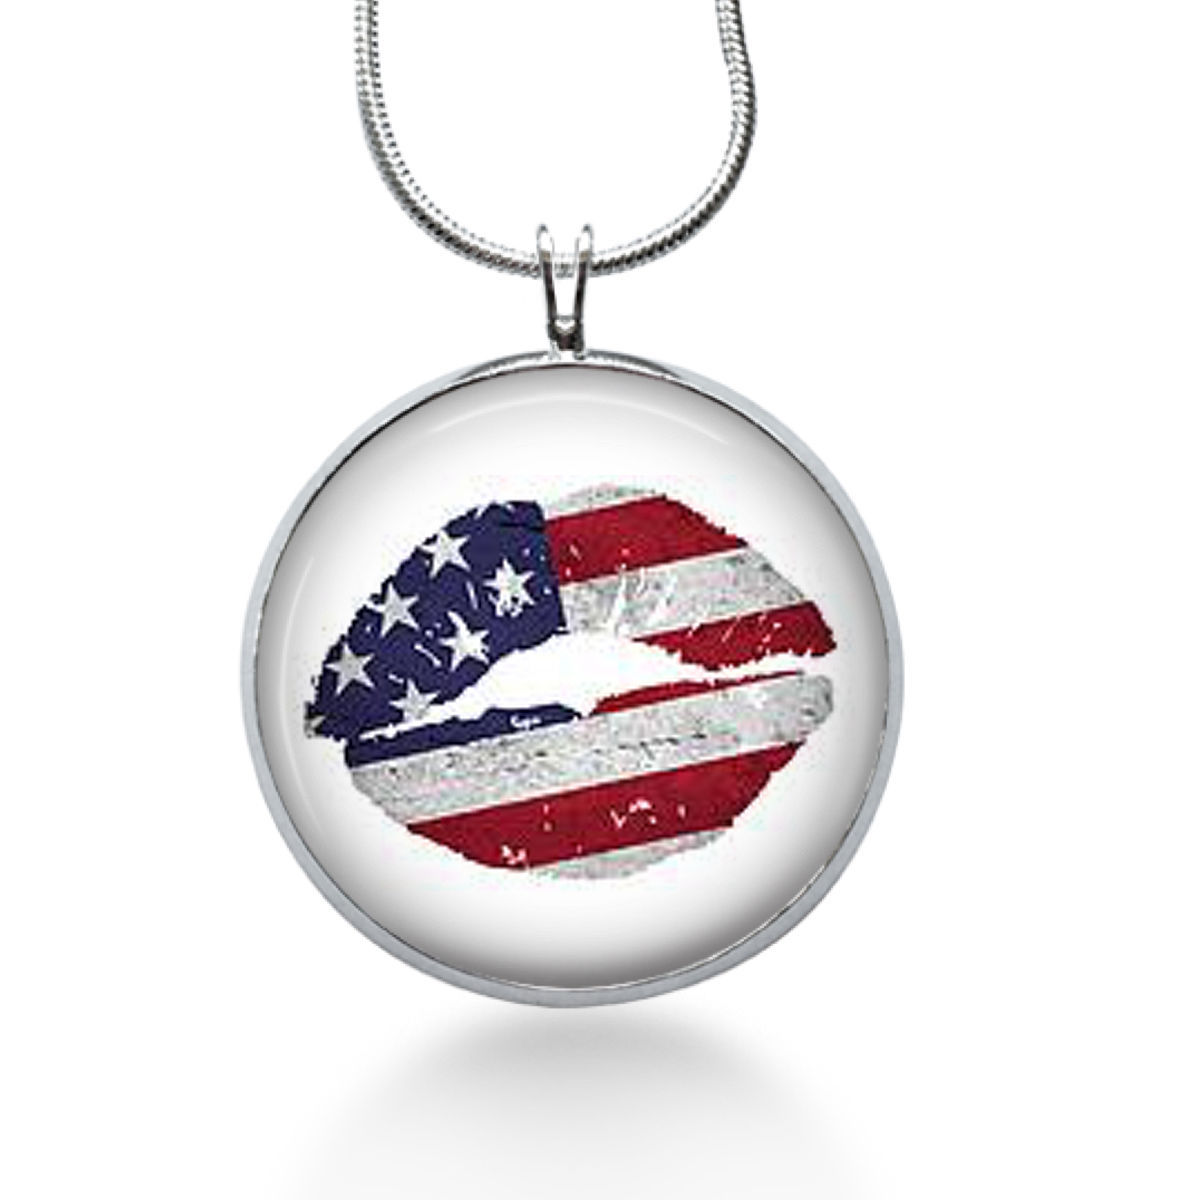 Lips Necklace, Flag lips ,lips pendant, Kiss Necklace, 4th of july- Goth jewelry